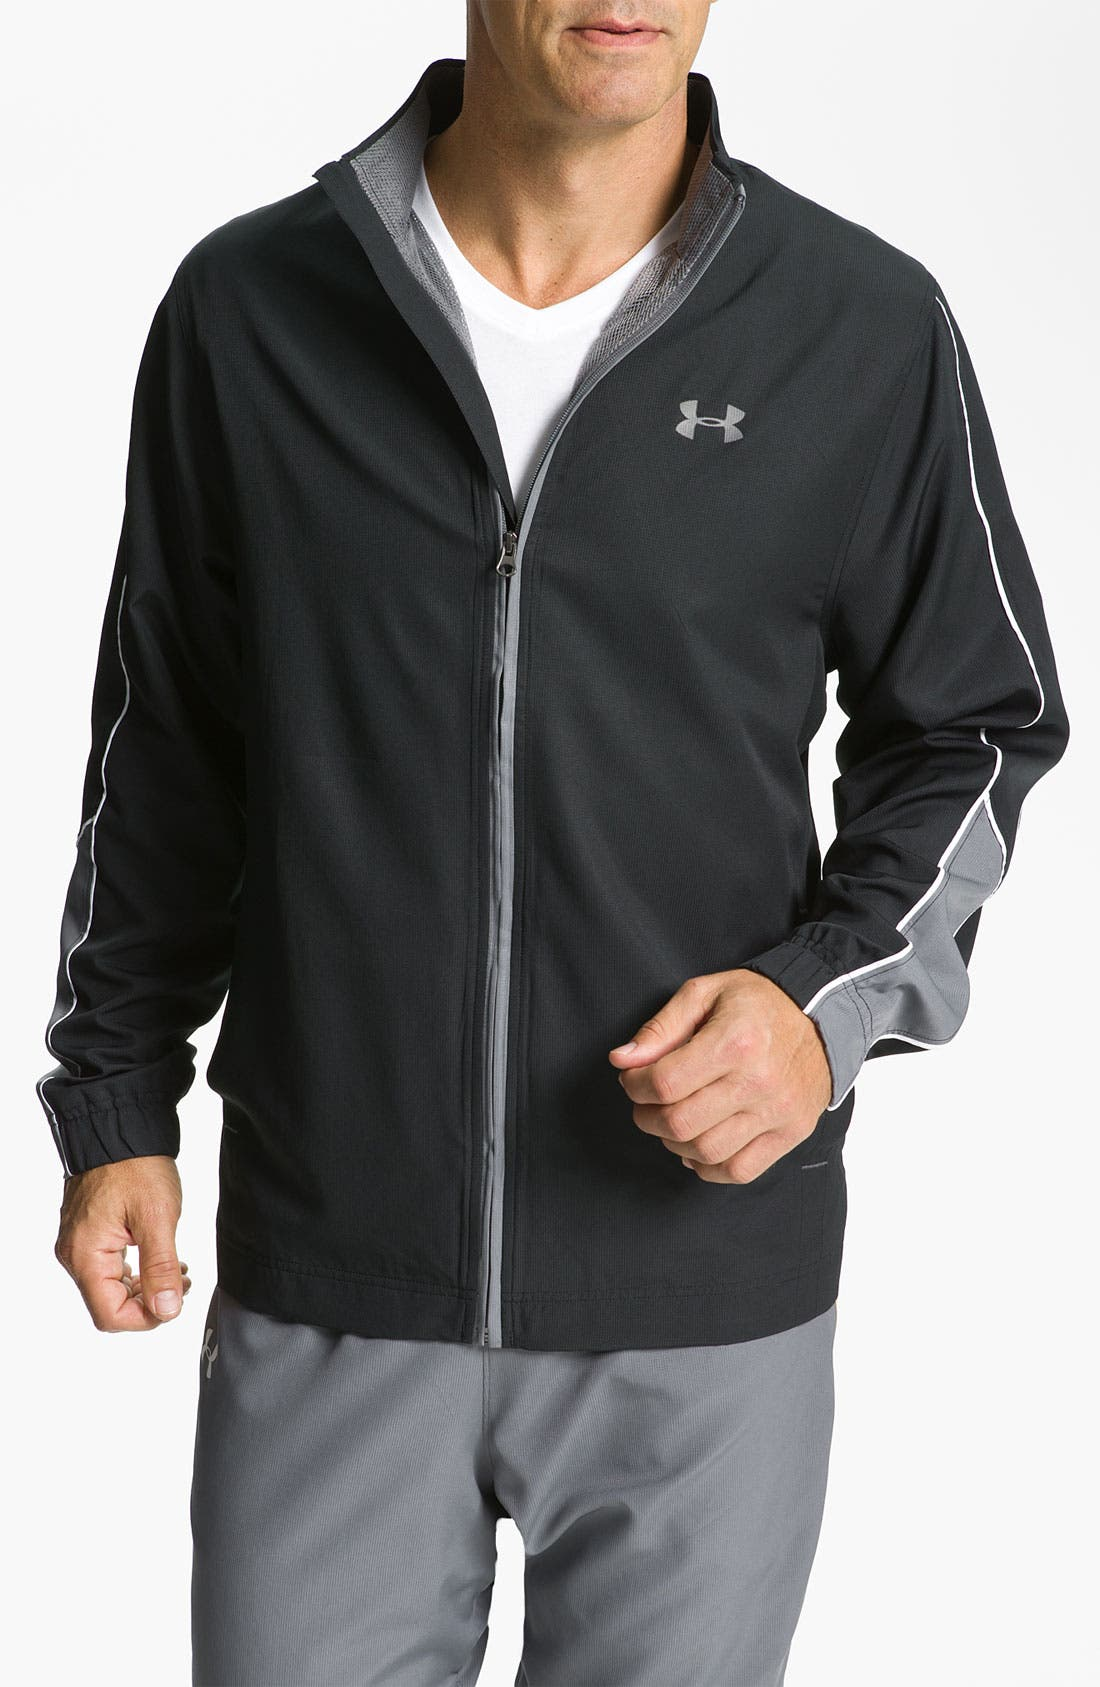 Main Image - Under Armour 'Bandito' Loose Fit Woven Jacket